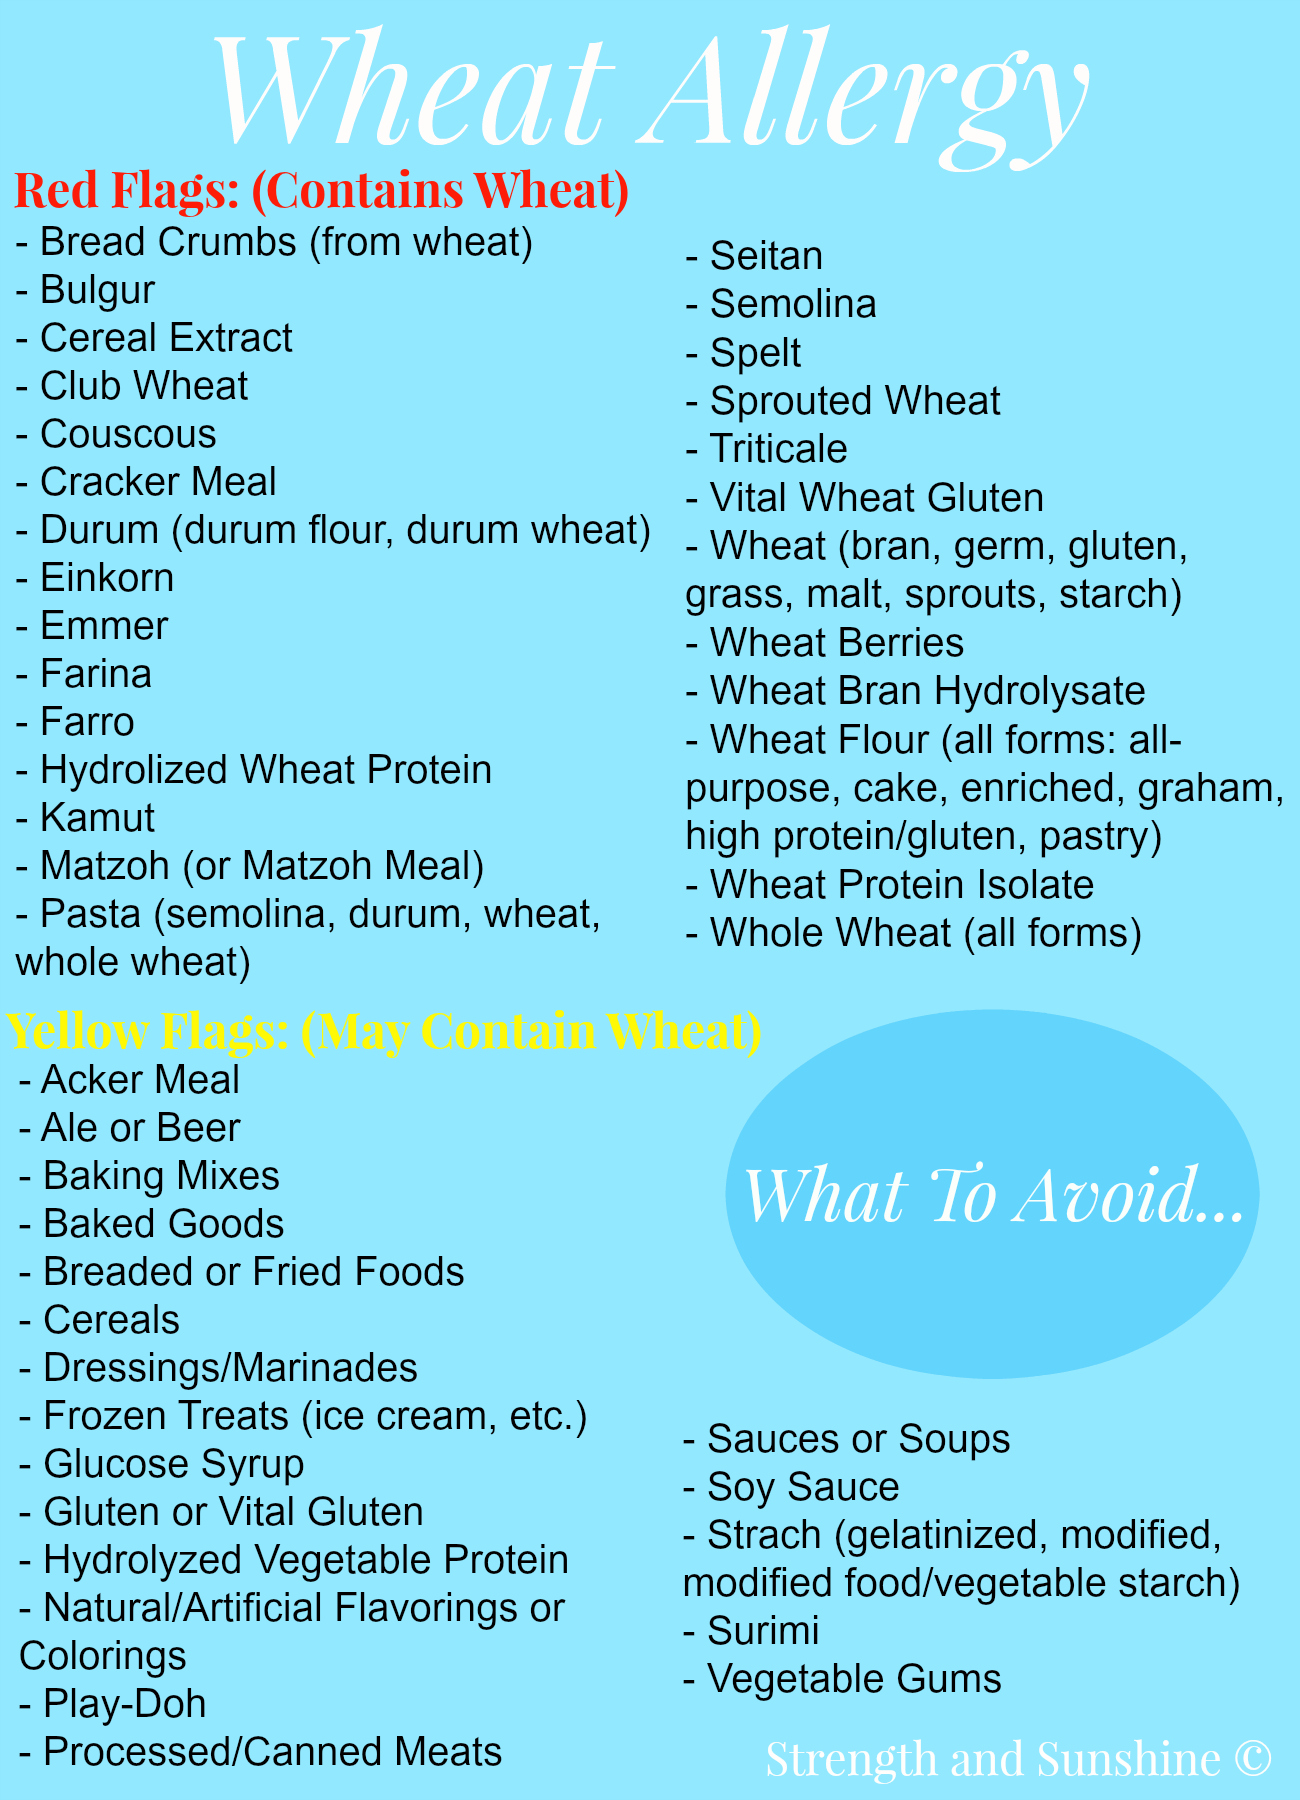 What To Avoid With A Wheat Allergy | Strength and Sunshine @RebeccaGF666 #foodallergies